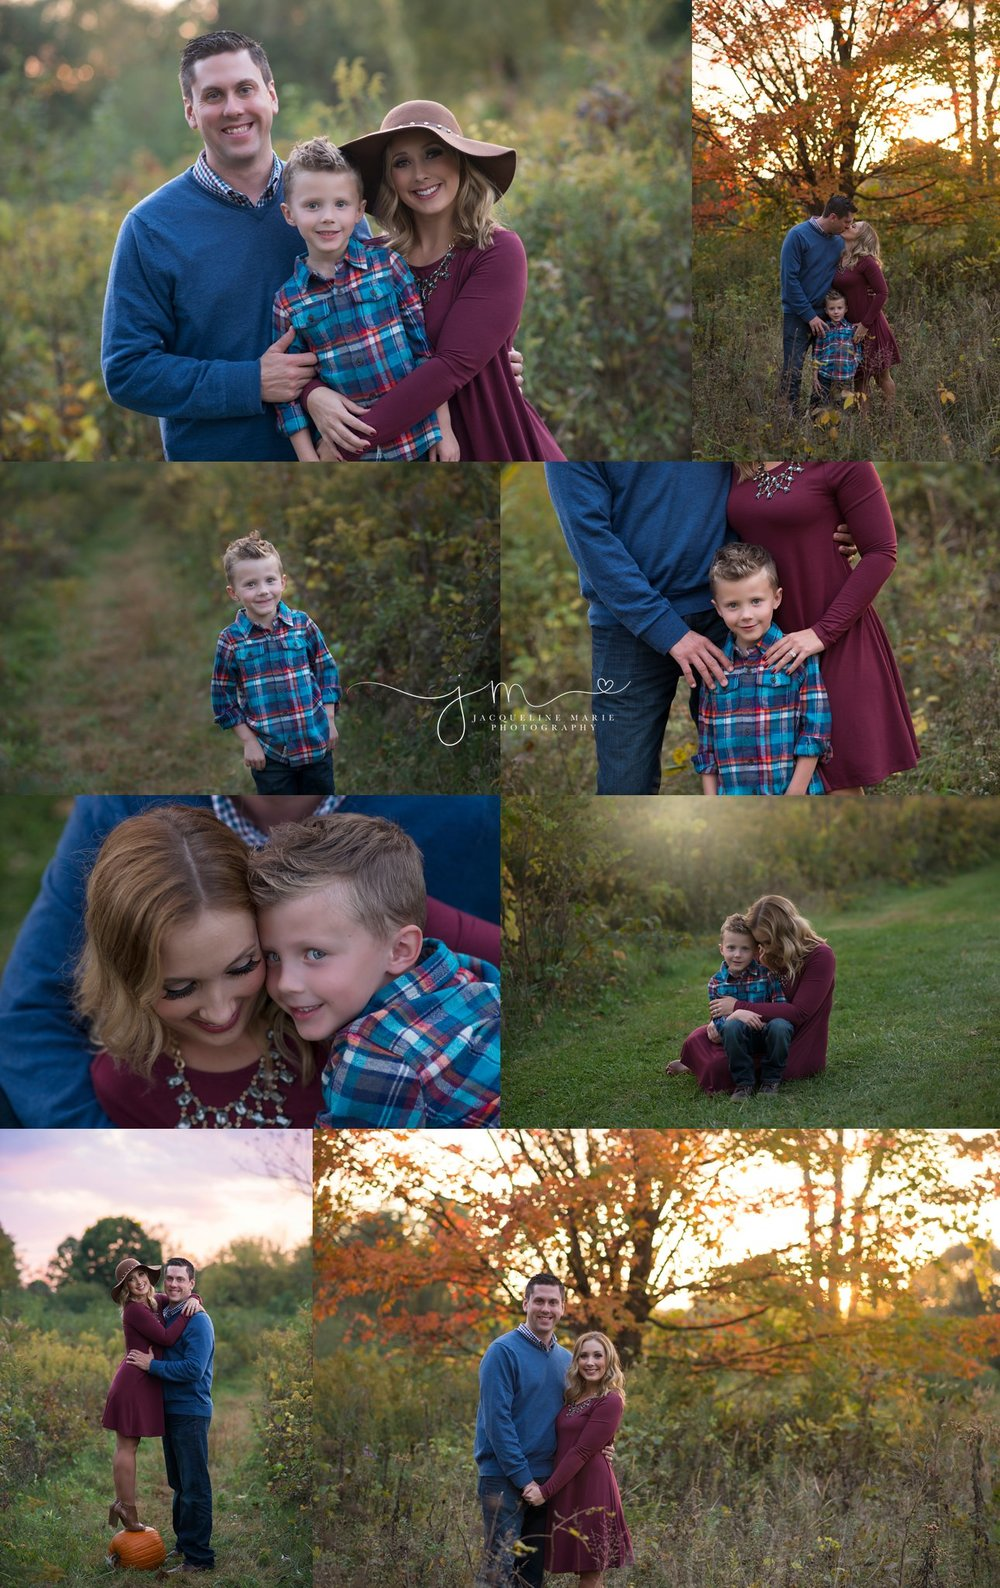 Family photography Columbus Ohio, Columbus family photographer, fall family photos